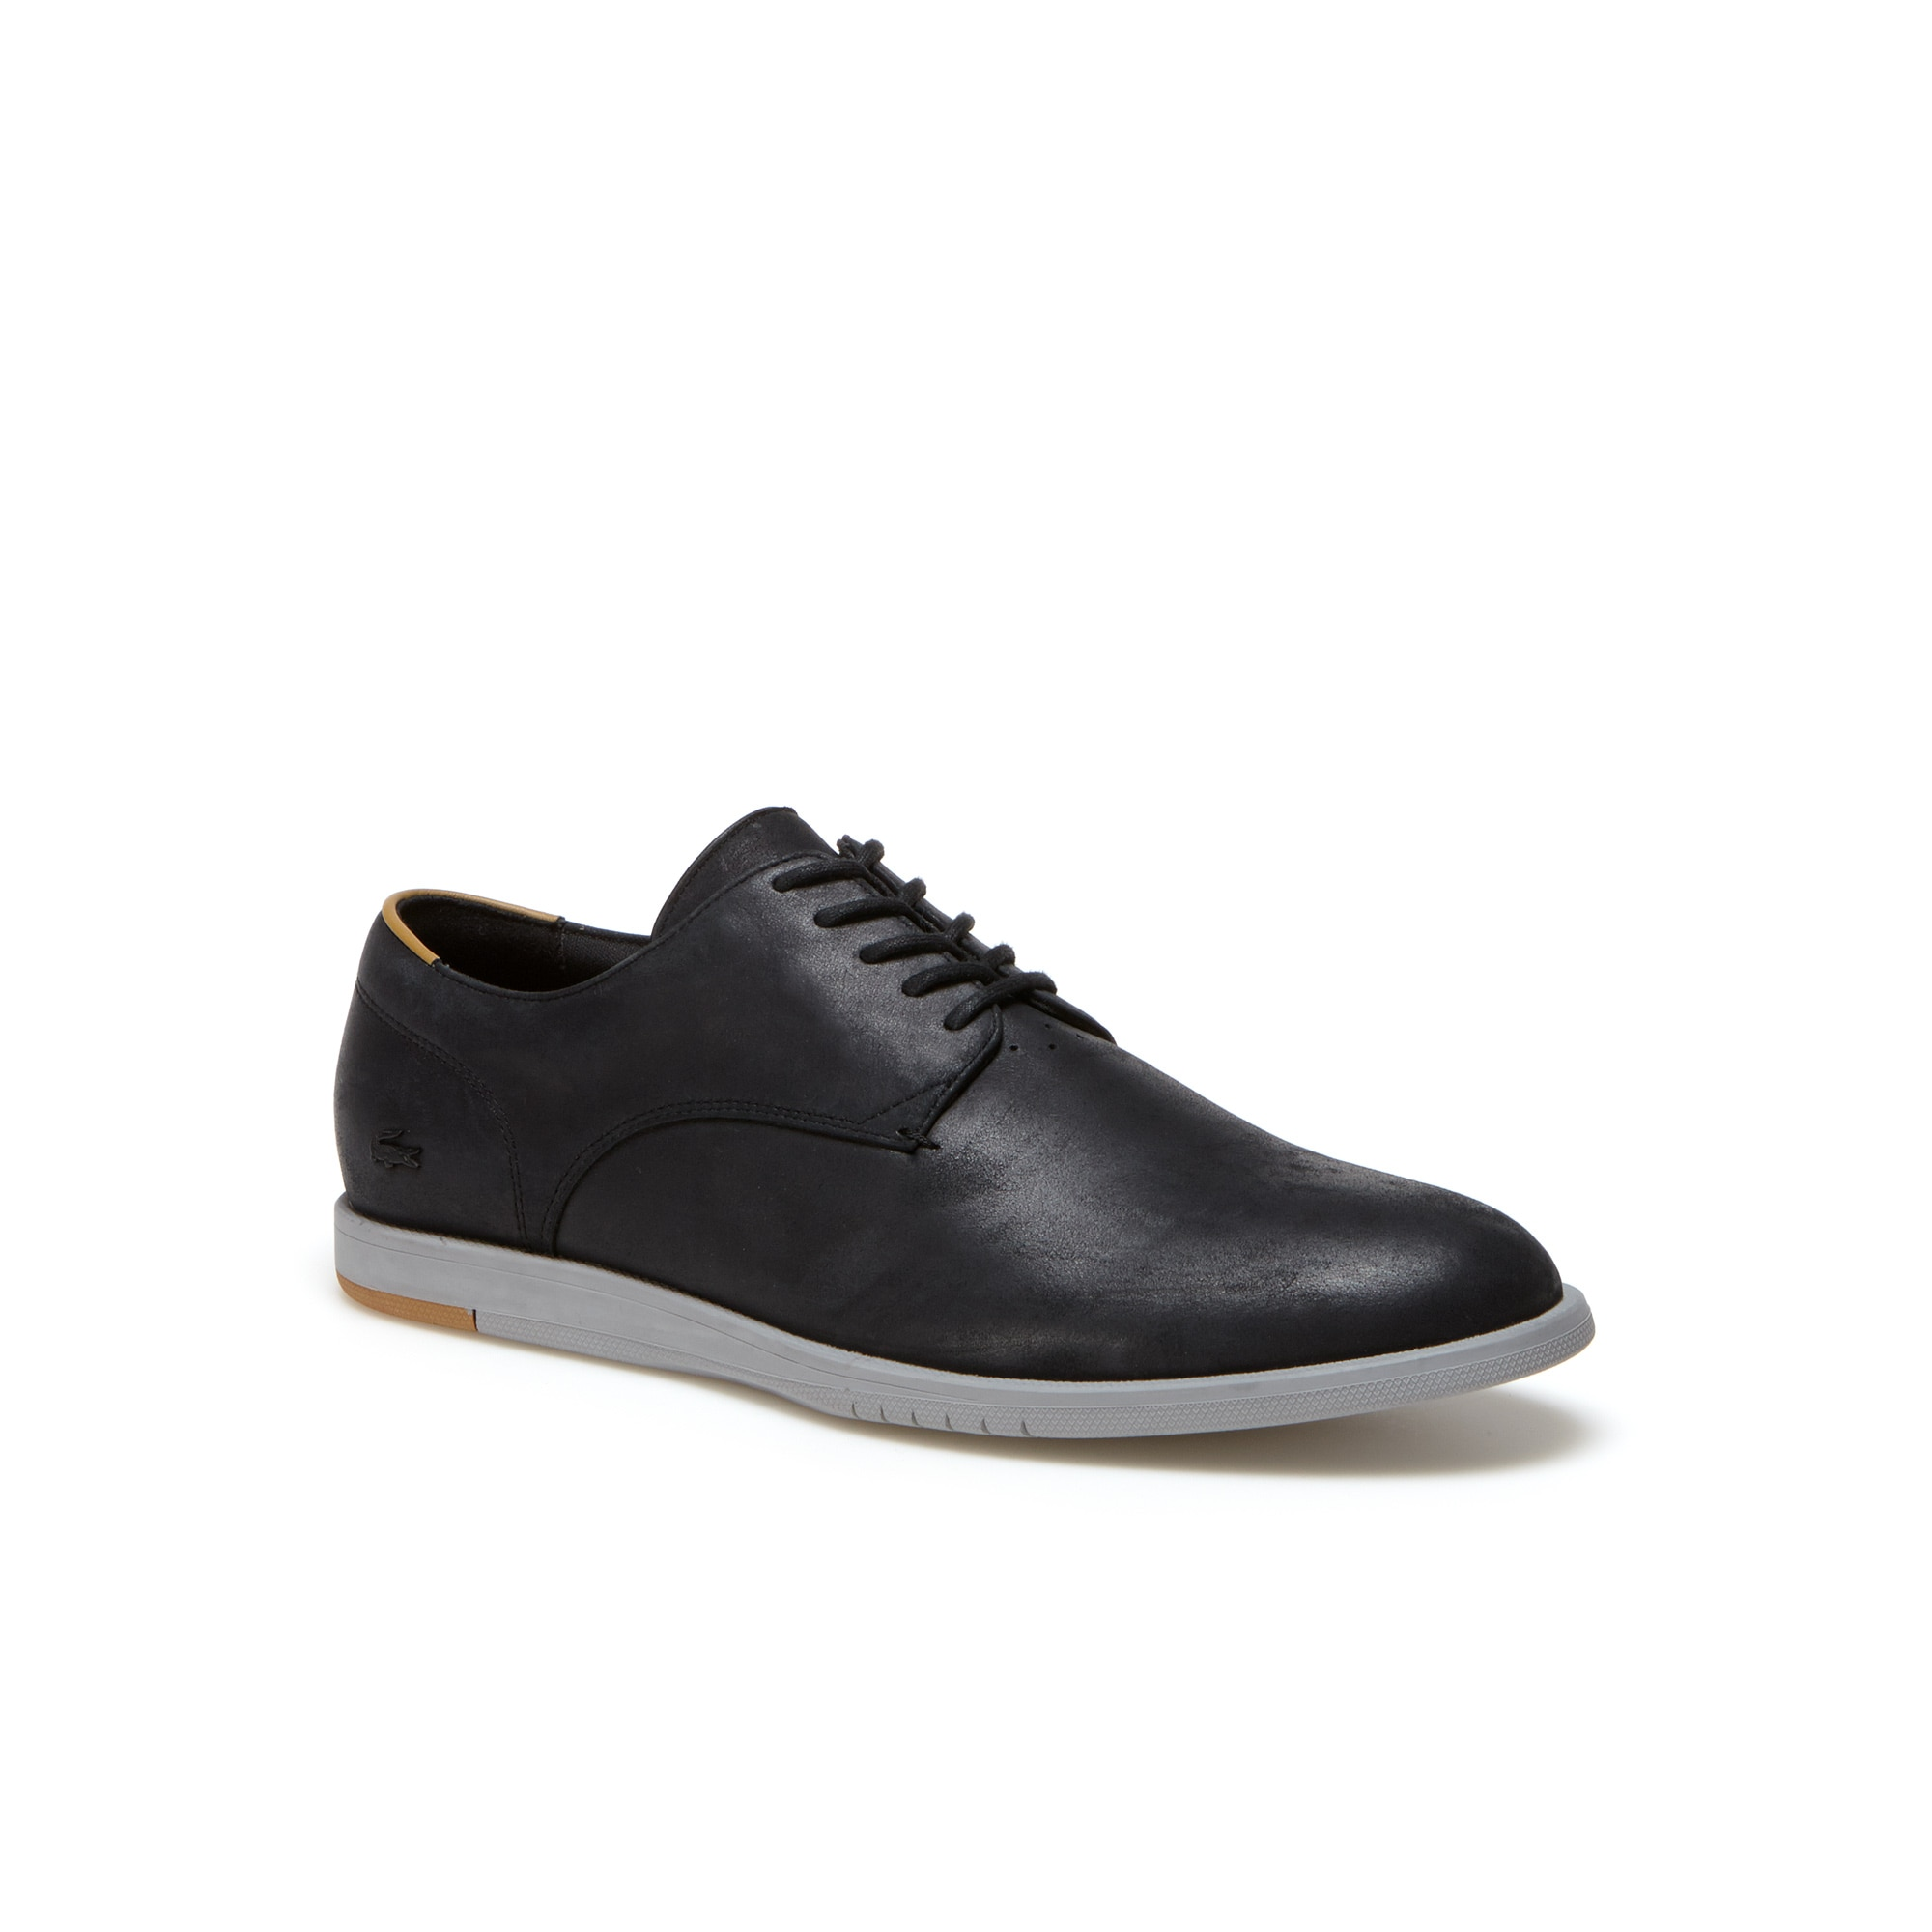 Men's Laccord Leather Derbies